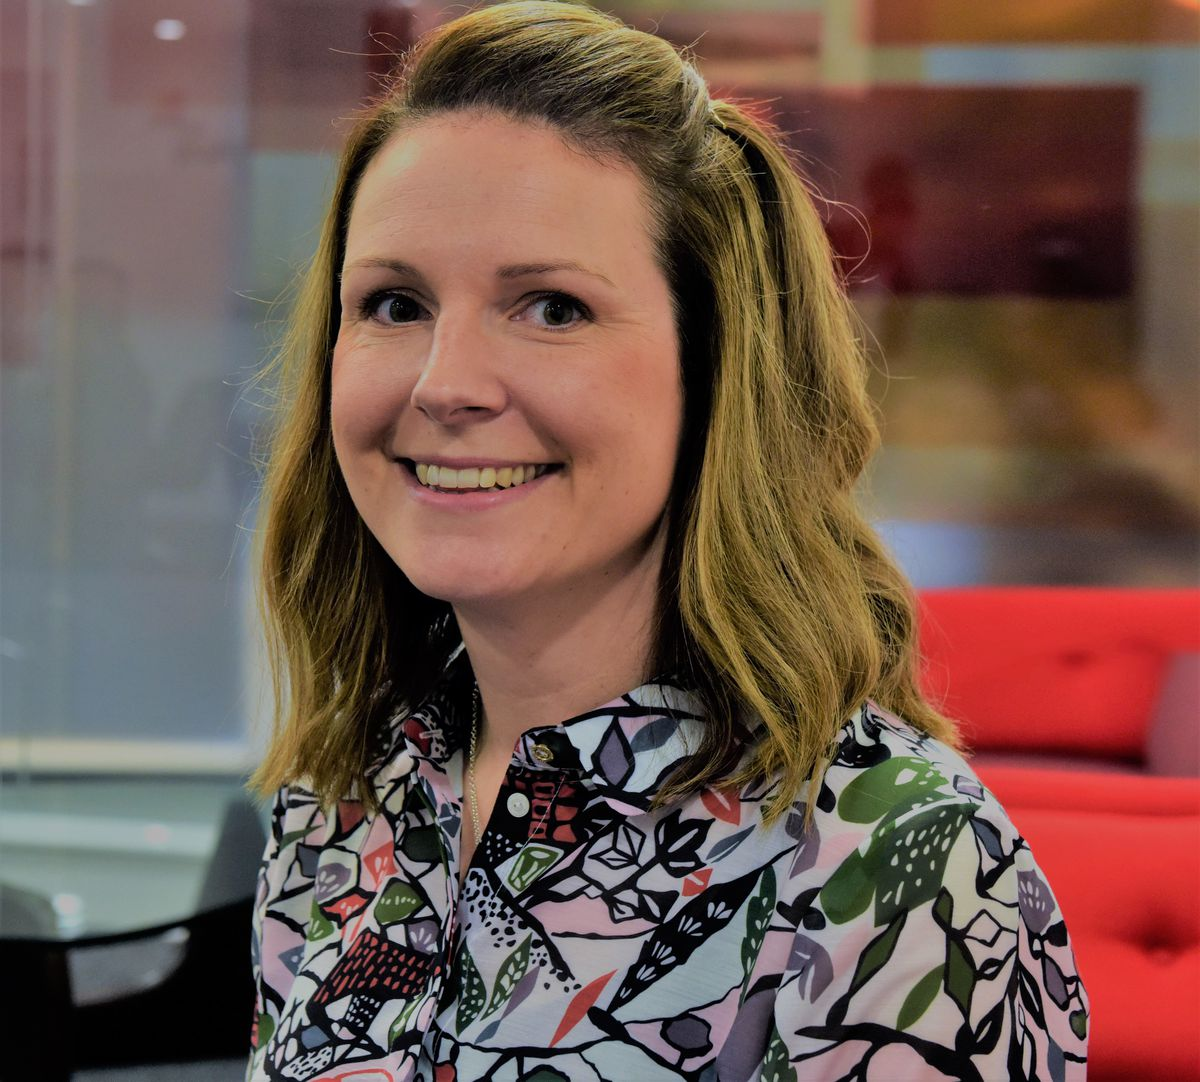 Sarah Phillips, retail and consumer specialist for PwC in the Midlands